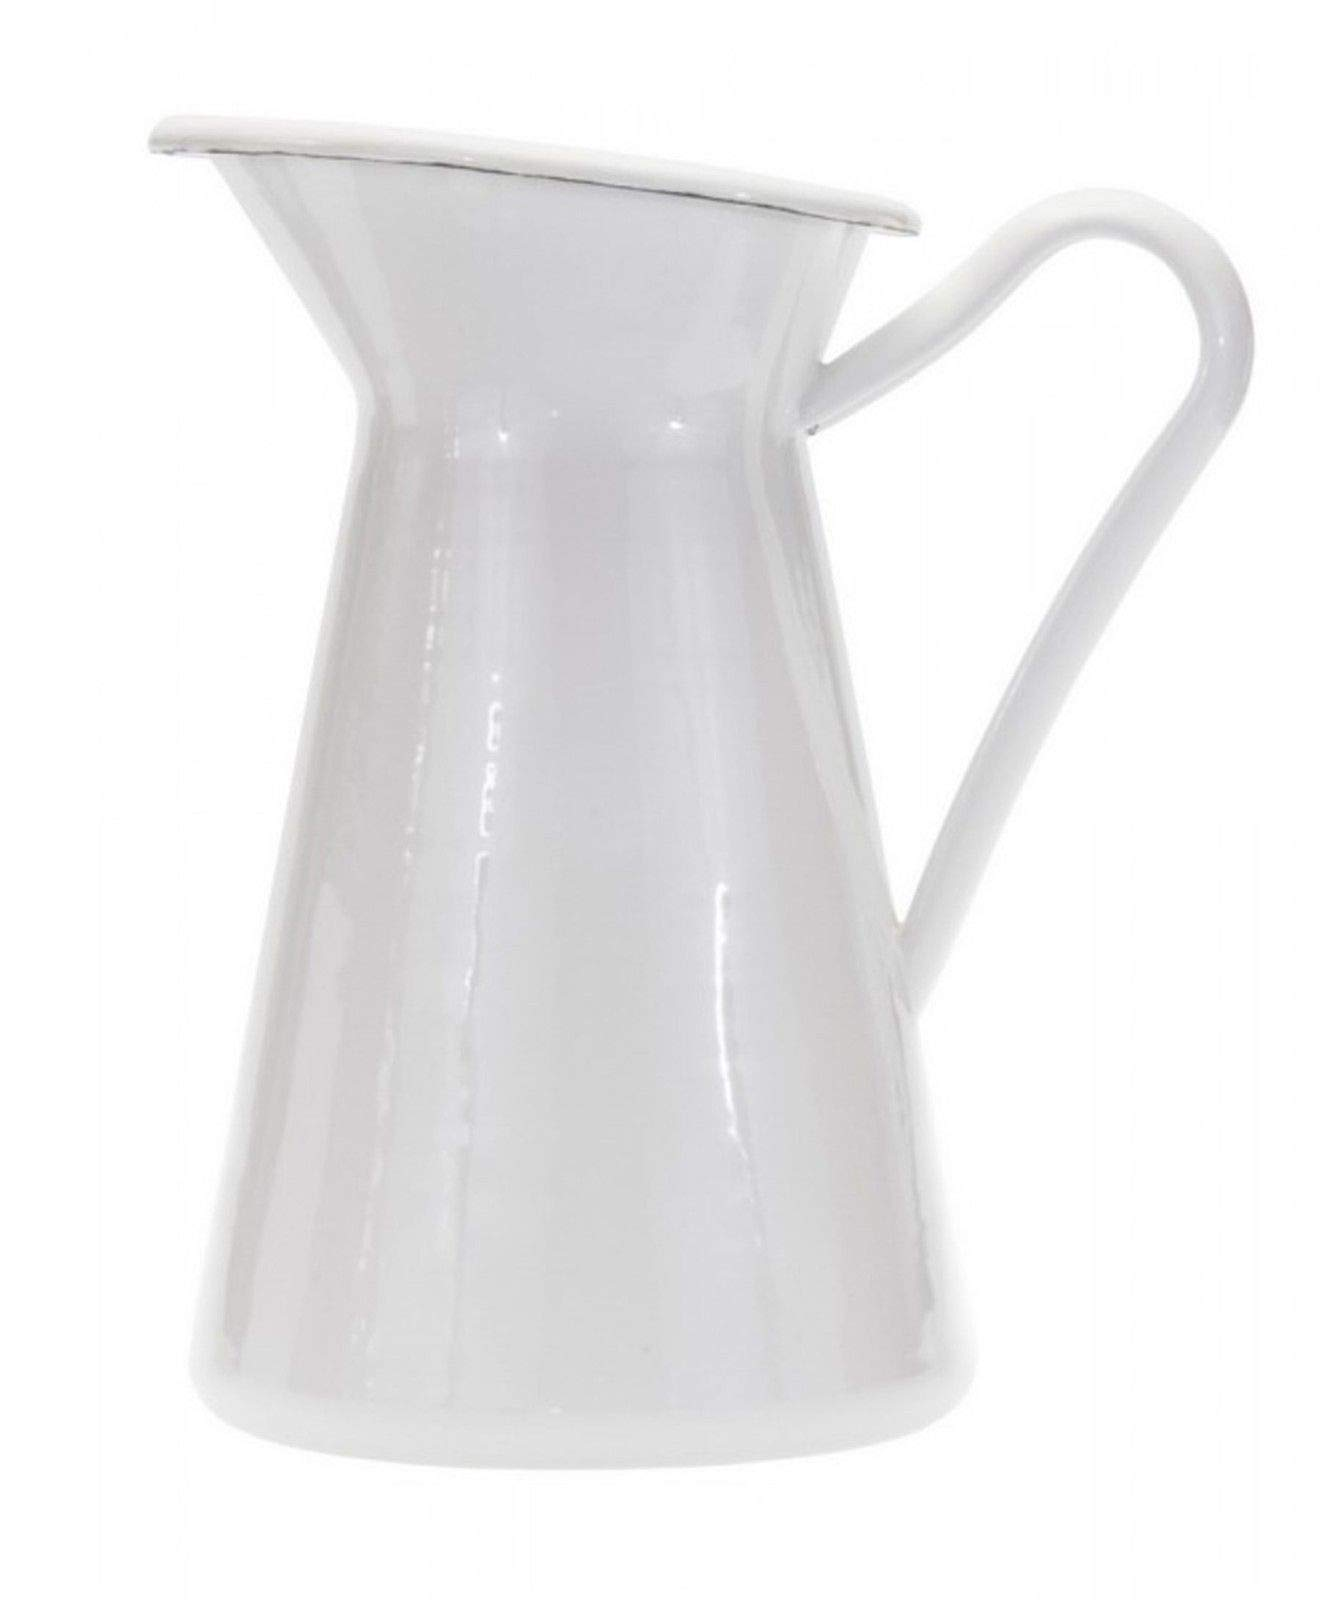 Enamelware White 12'' Tall Serving Pitcher or Vase AM05